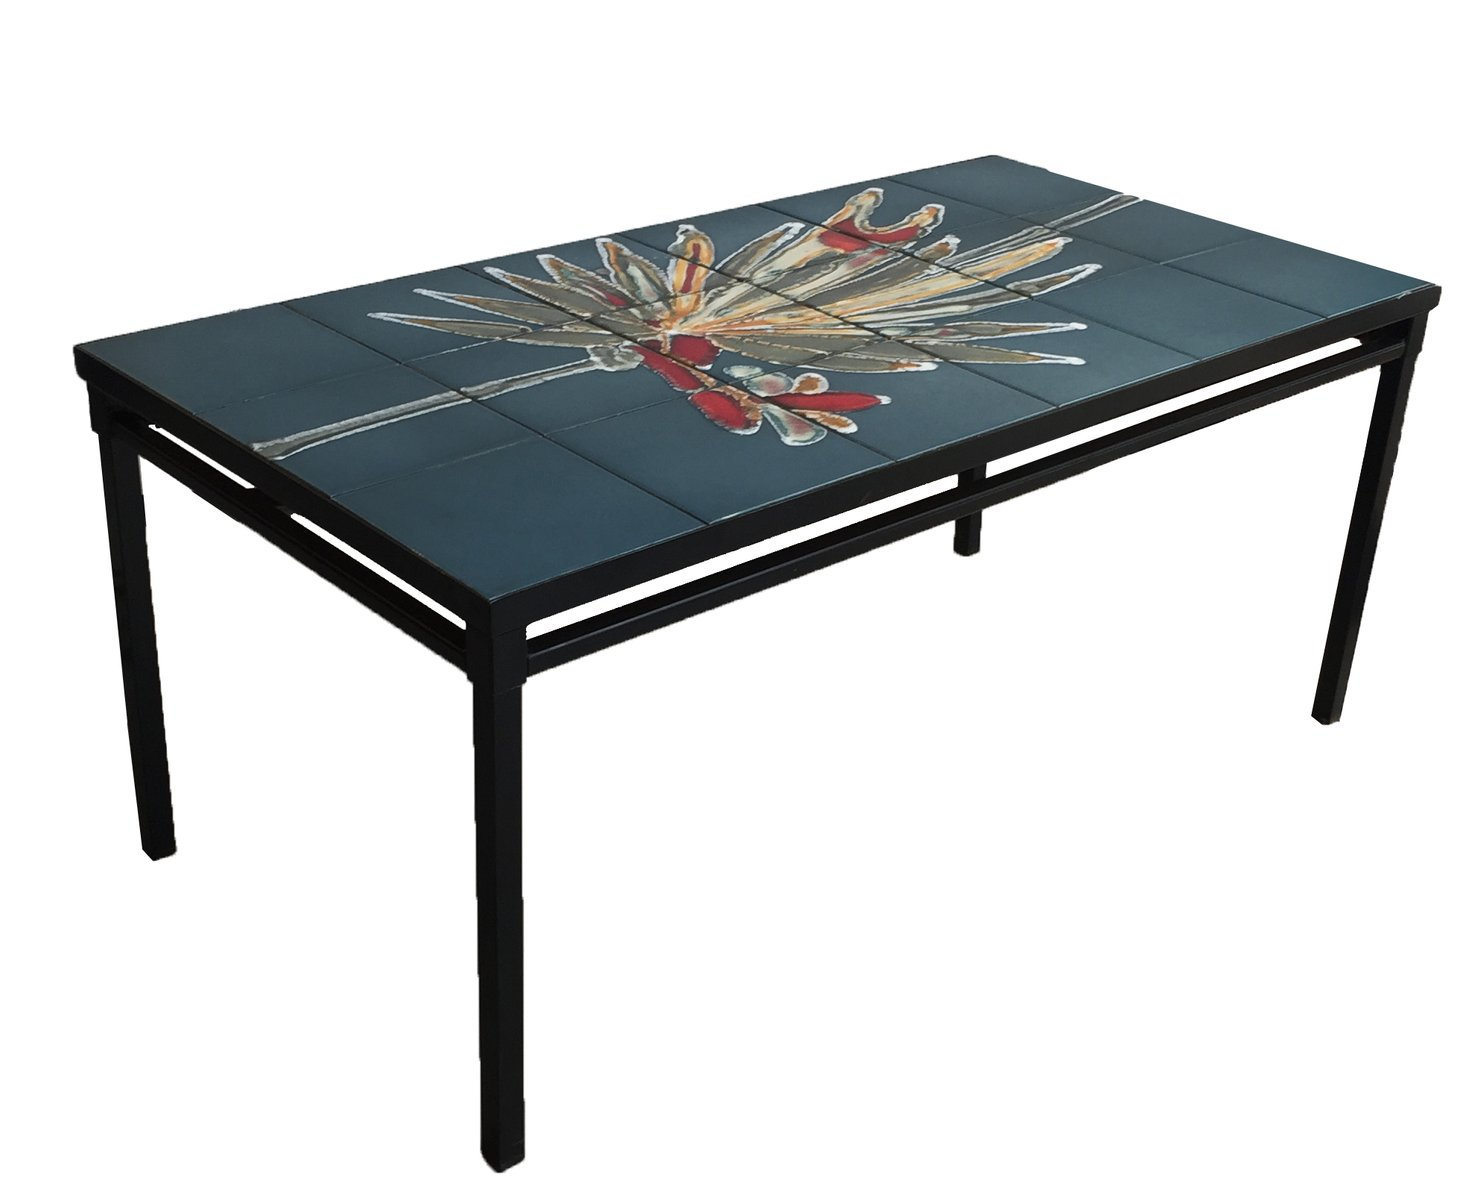 ceramic and black metal coffee table 1950s for sale at pamono. Black Bedroom Furniture Sets. Home Design Ideas